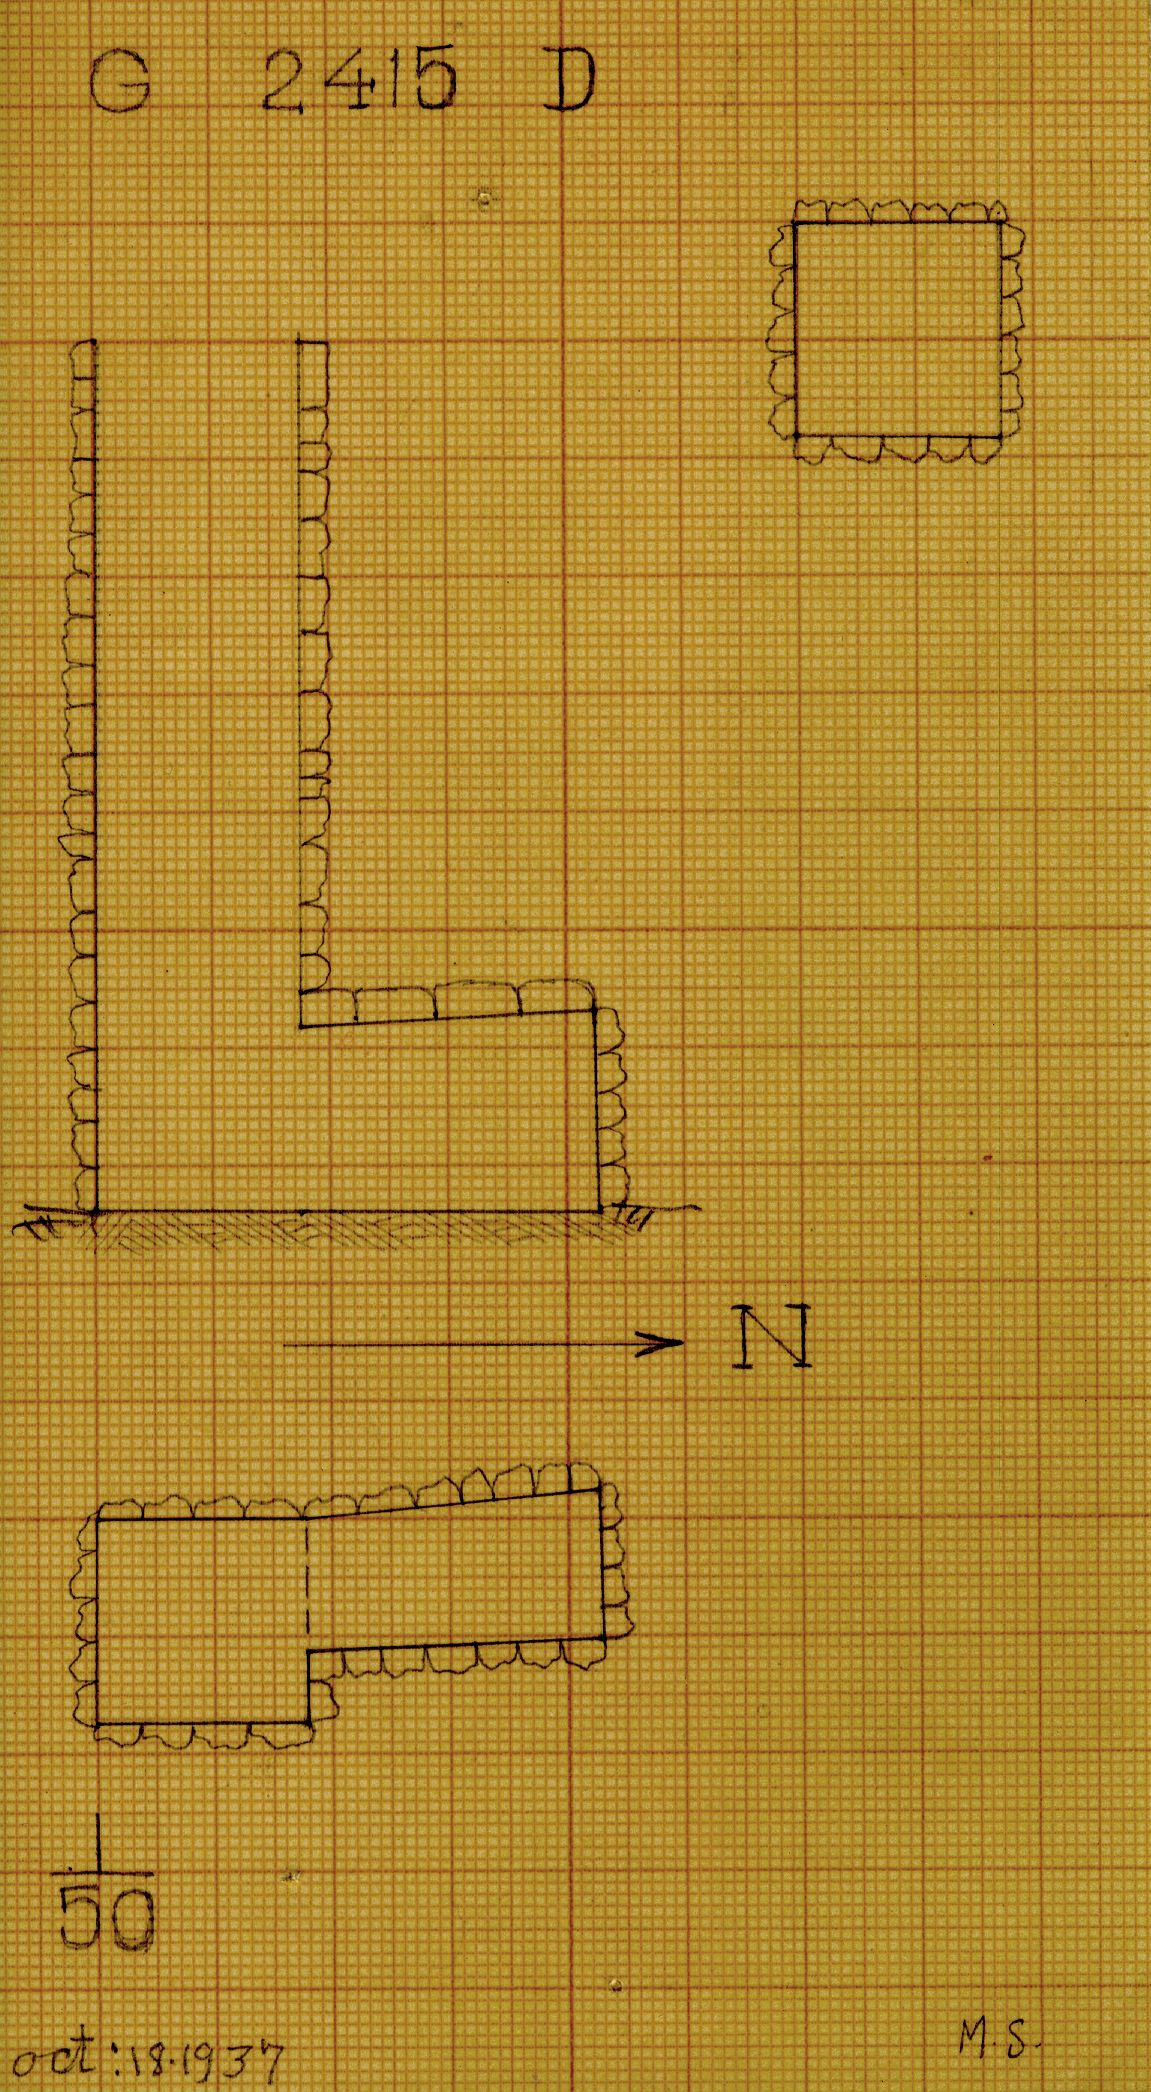 Maps and plans: G 2415, Shaft D